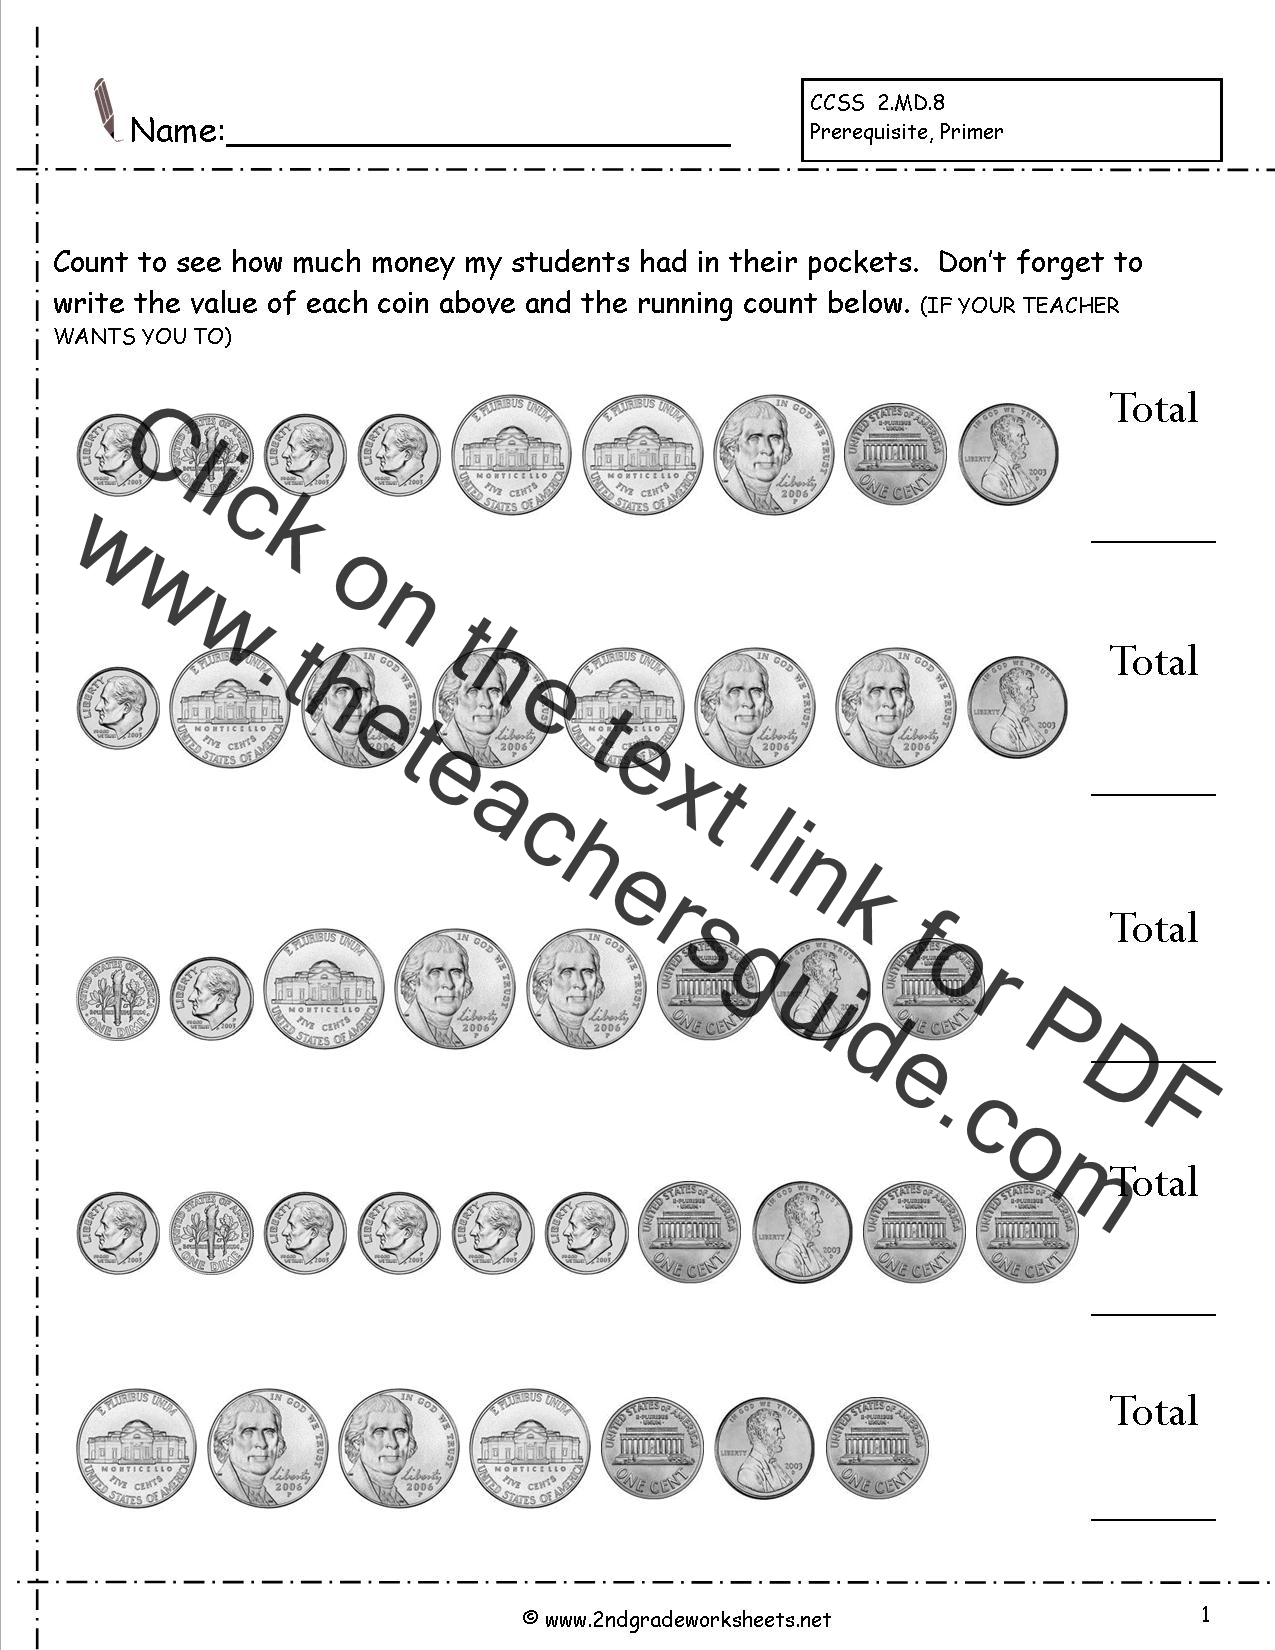 Free Math Worksheets and Printouts – Math Worksheets for 2nd Graders